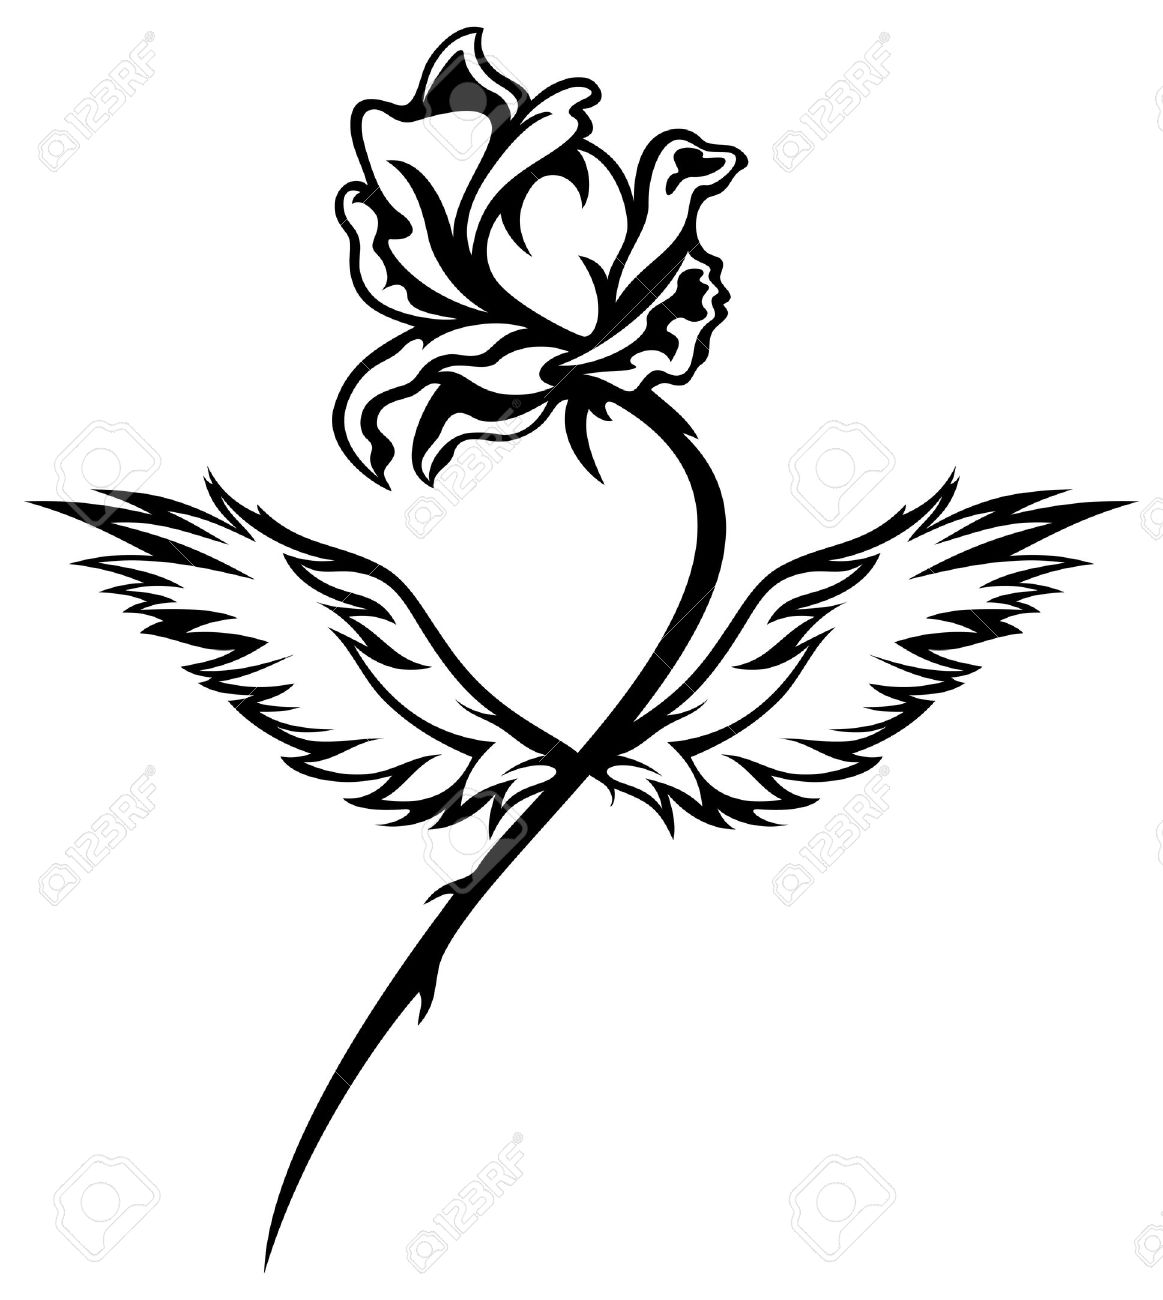 1163x1300 Romantic Winged Rose Black And White Vector Illustration Royalty